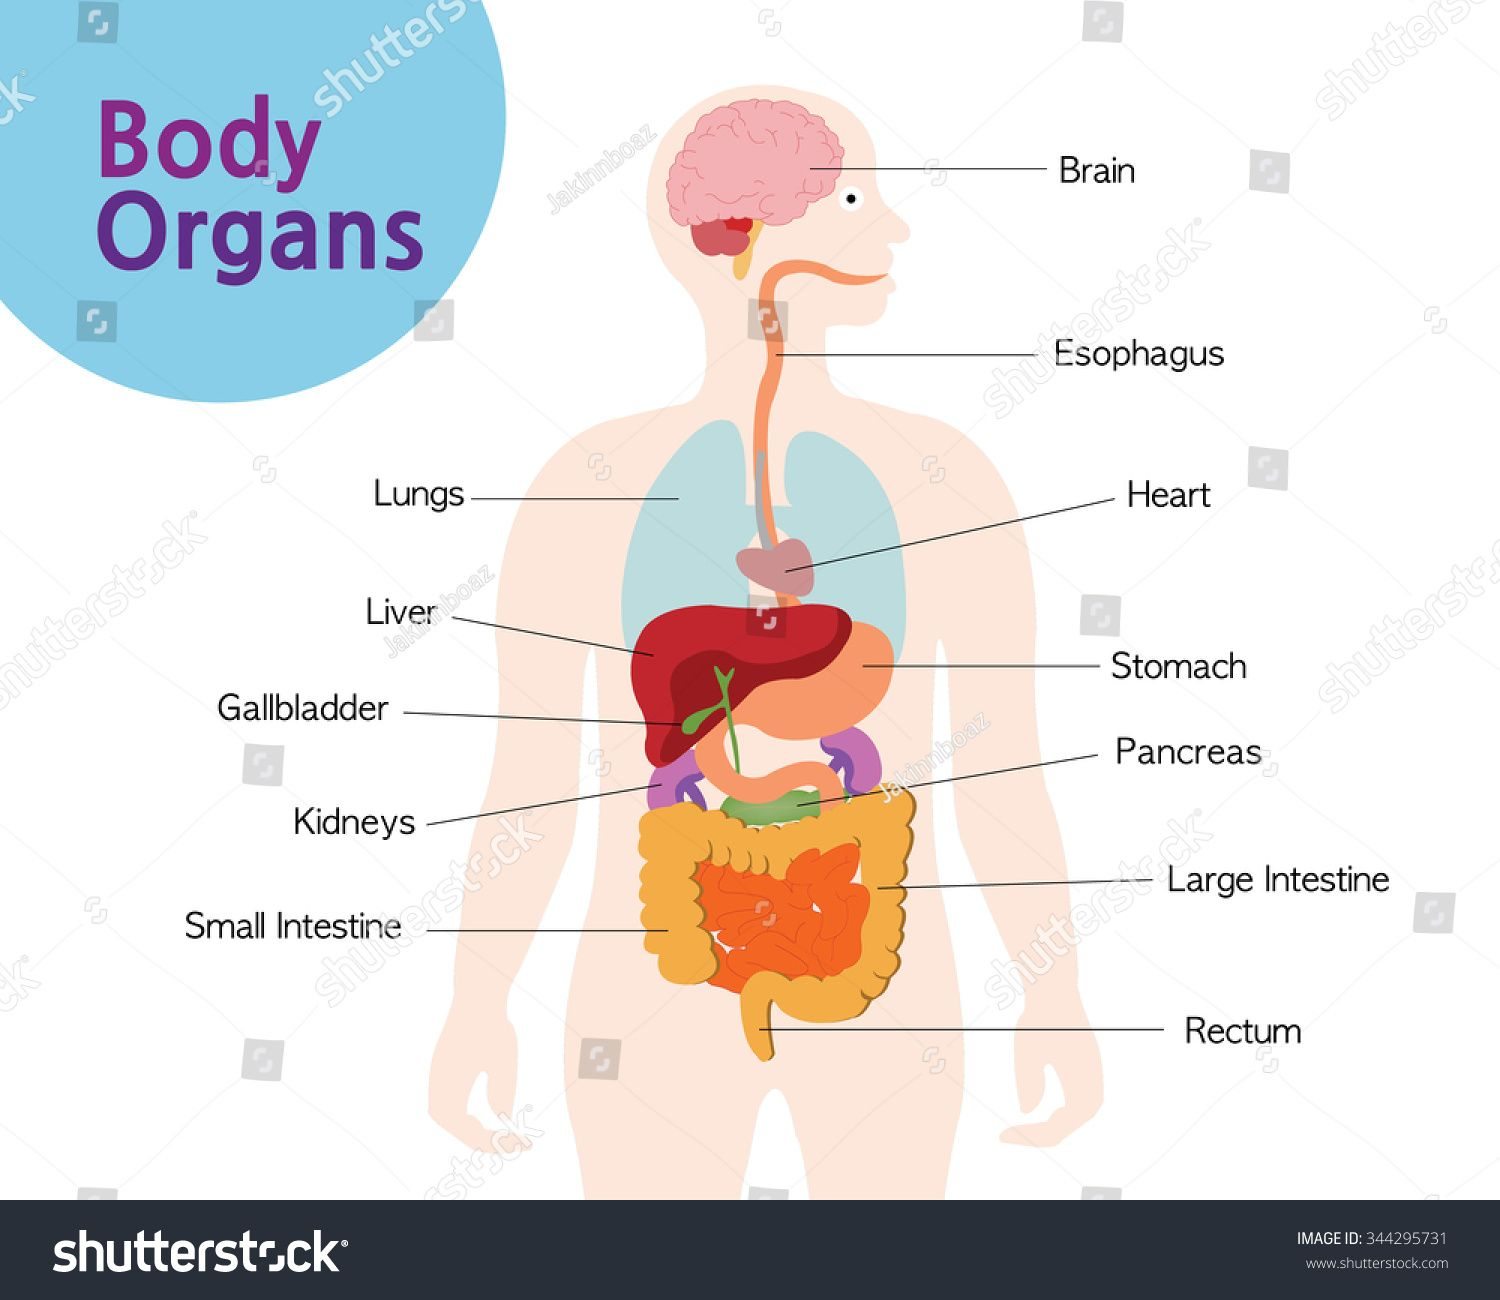 Pictures Of Organs In The Body Human Anatomy Organs Body Organs